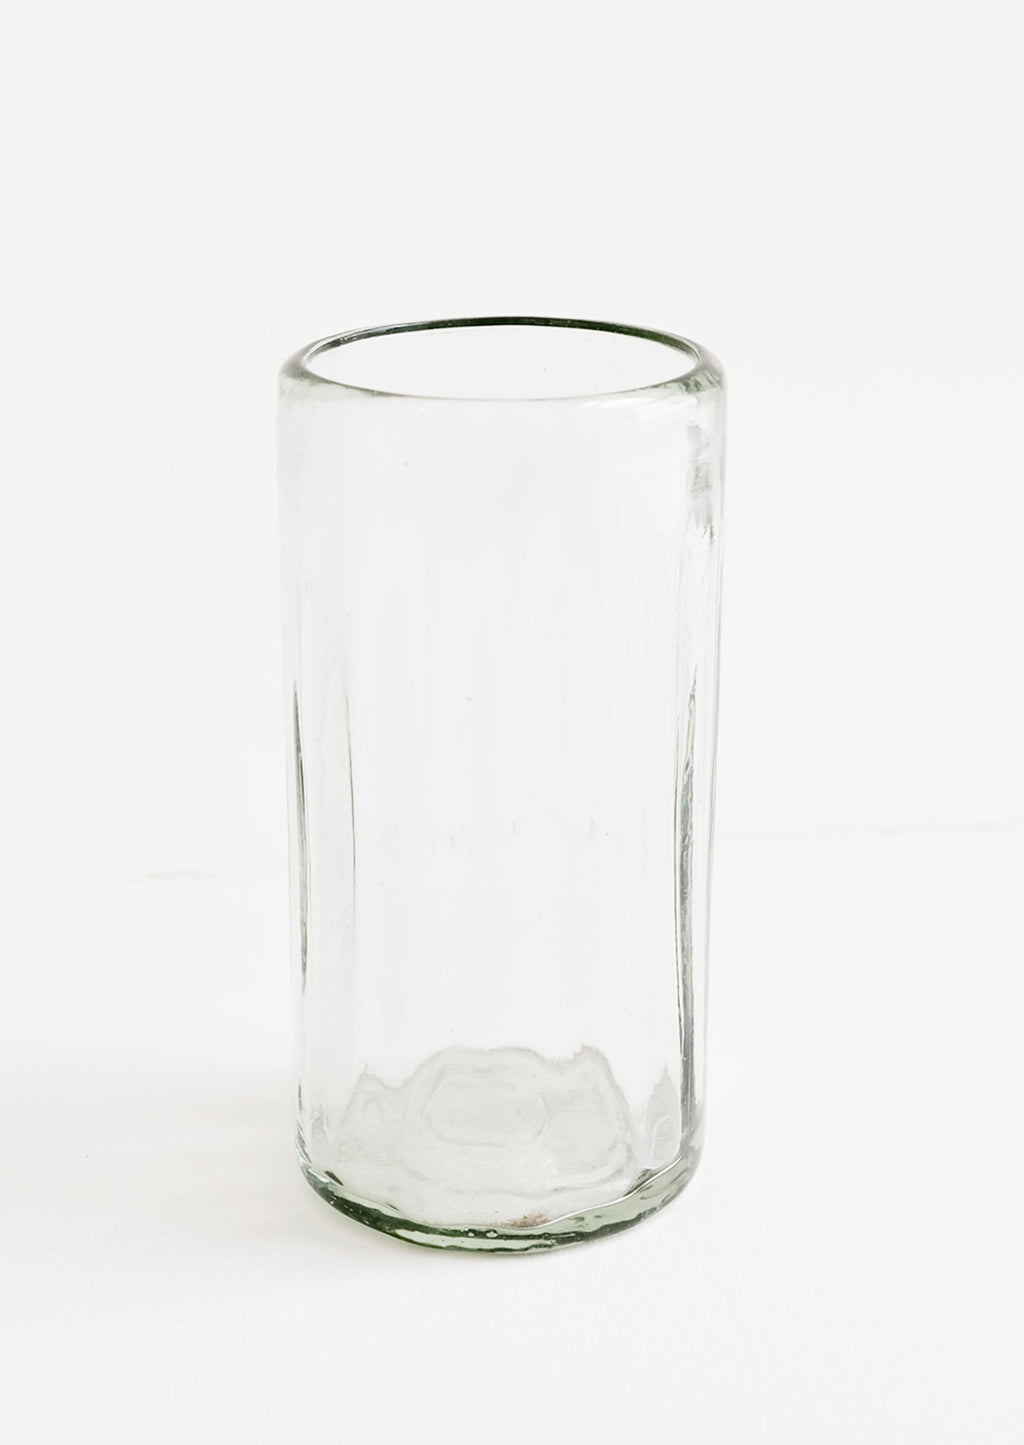 Tall [$14.00]: A horizontally ribbed tumblers in thick green hued glass.